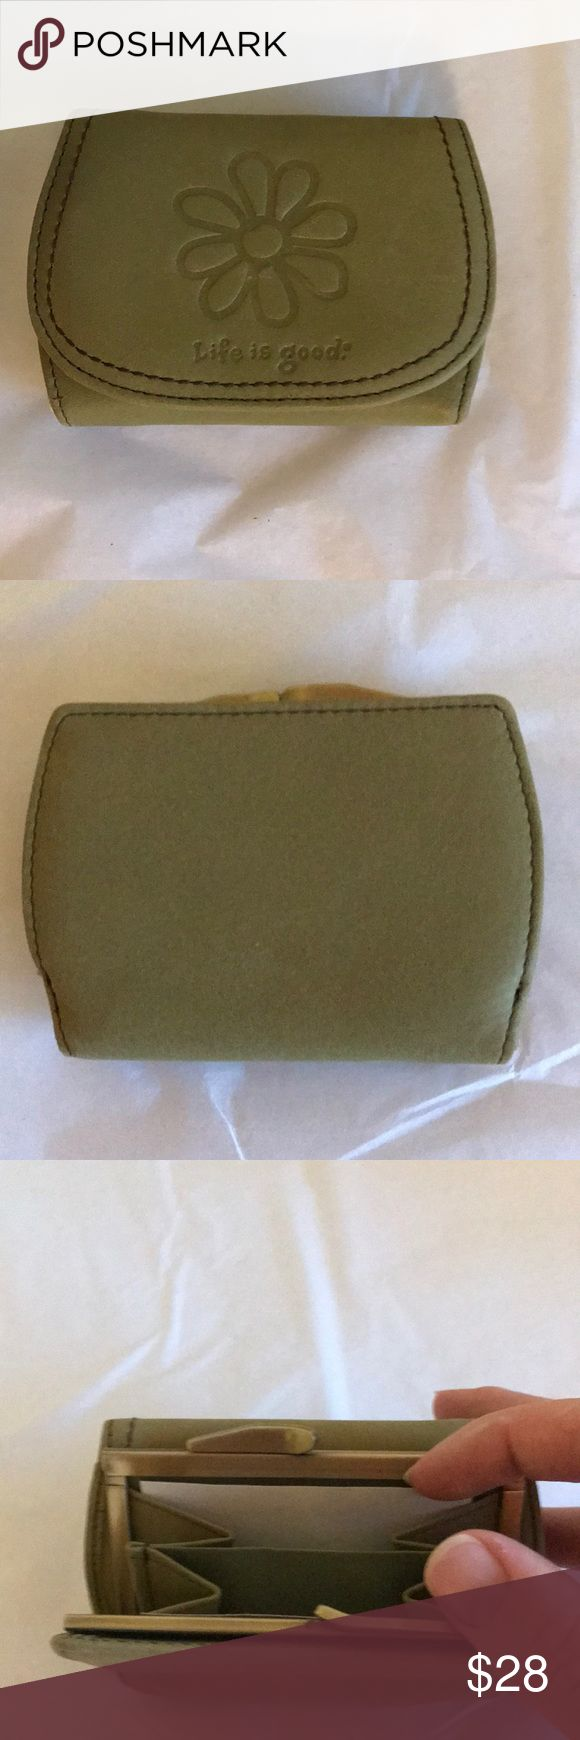 Life is Good Green Wallet Tri fold wallet. Life is Good. NWOT. Light green color. Received as a gift and never used. Change purse, bills, and cards sections. Does NOT come with box, bag, or tag. Life Is Good Bags Wallets